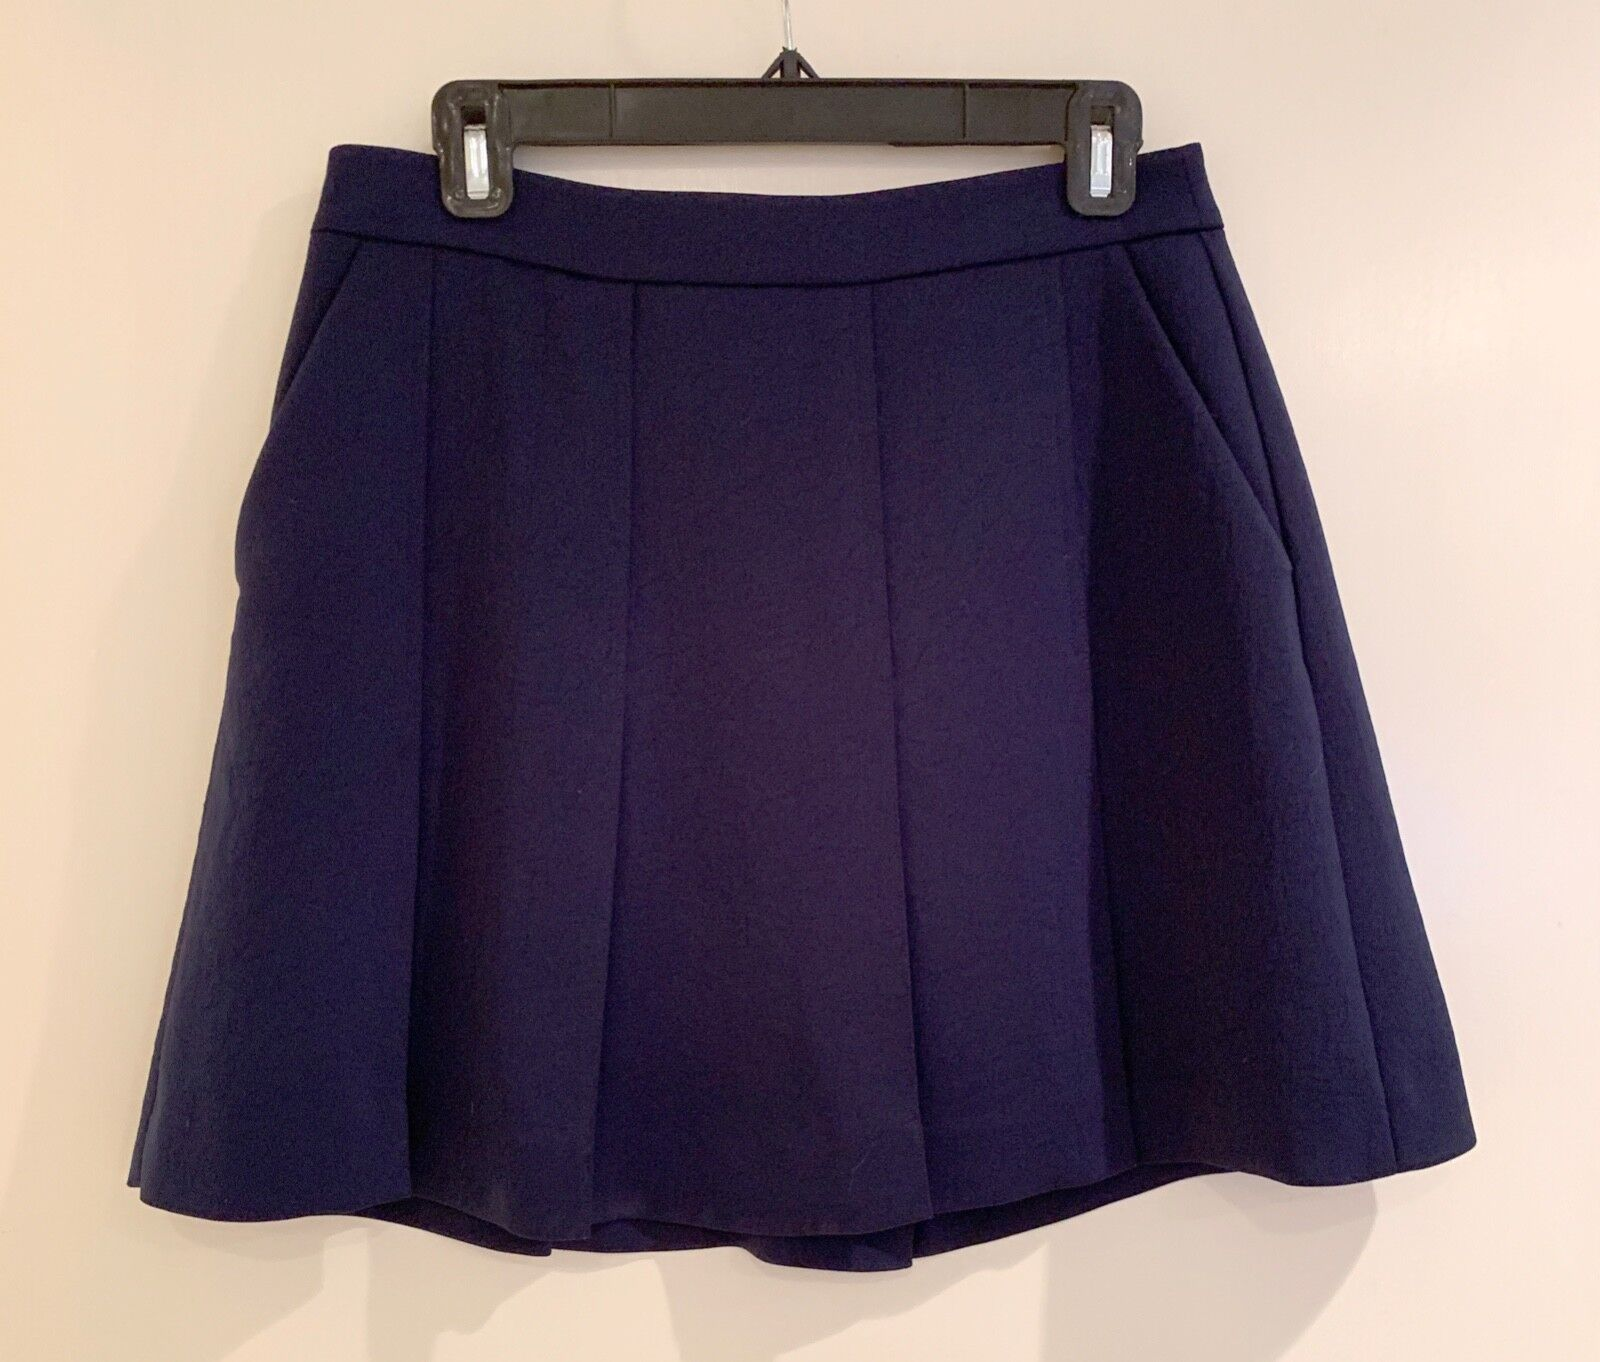 Vince navy bluee pleated skirt - size 6